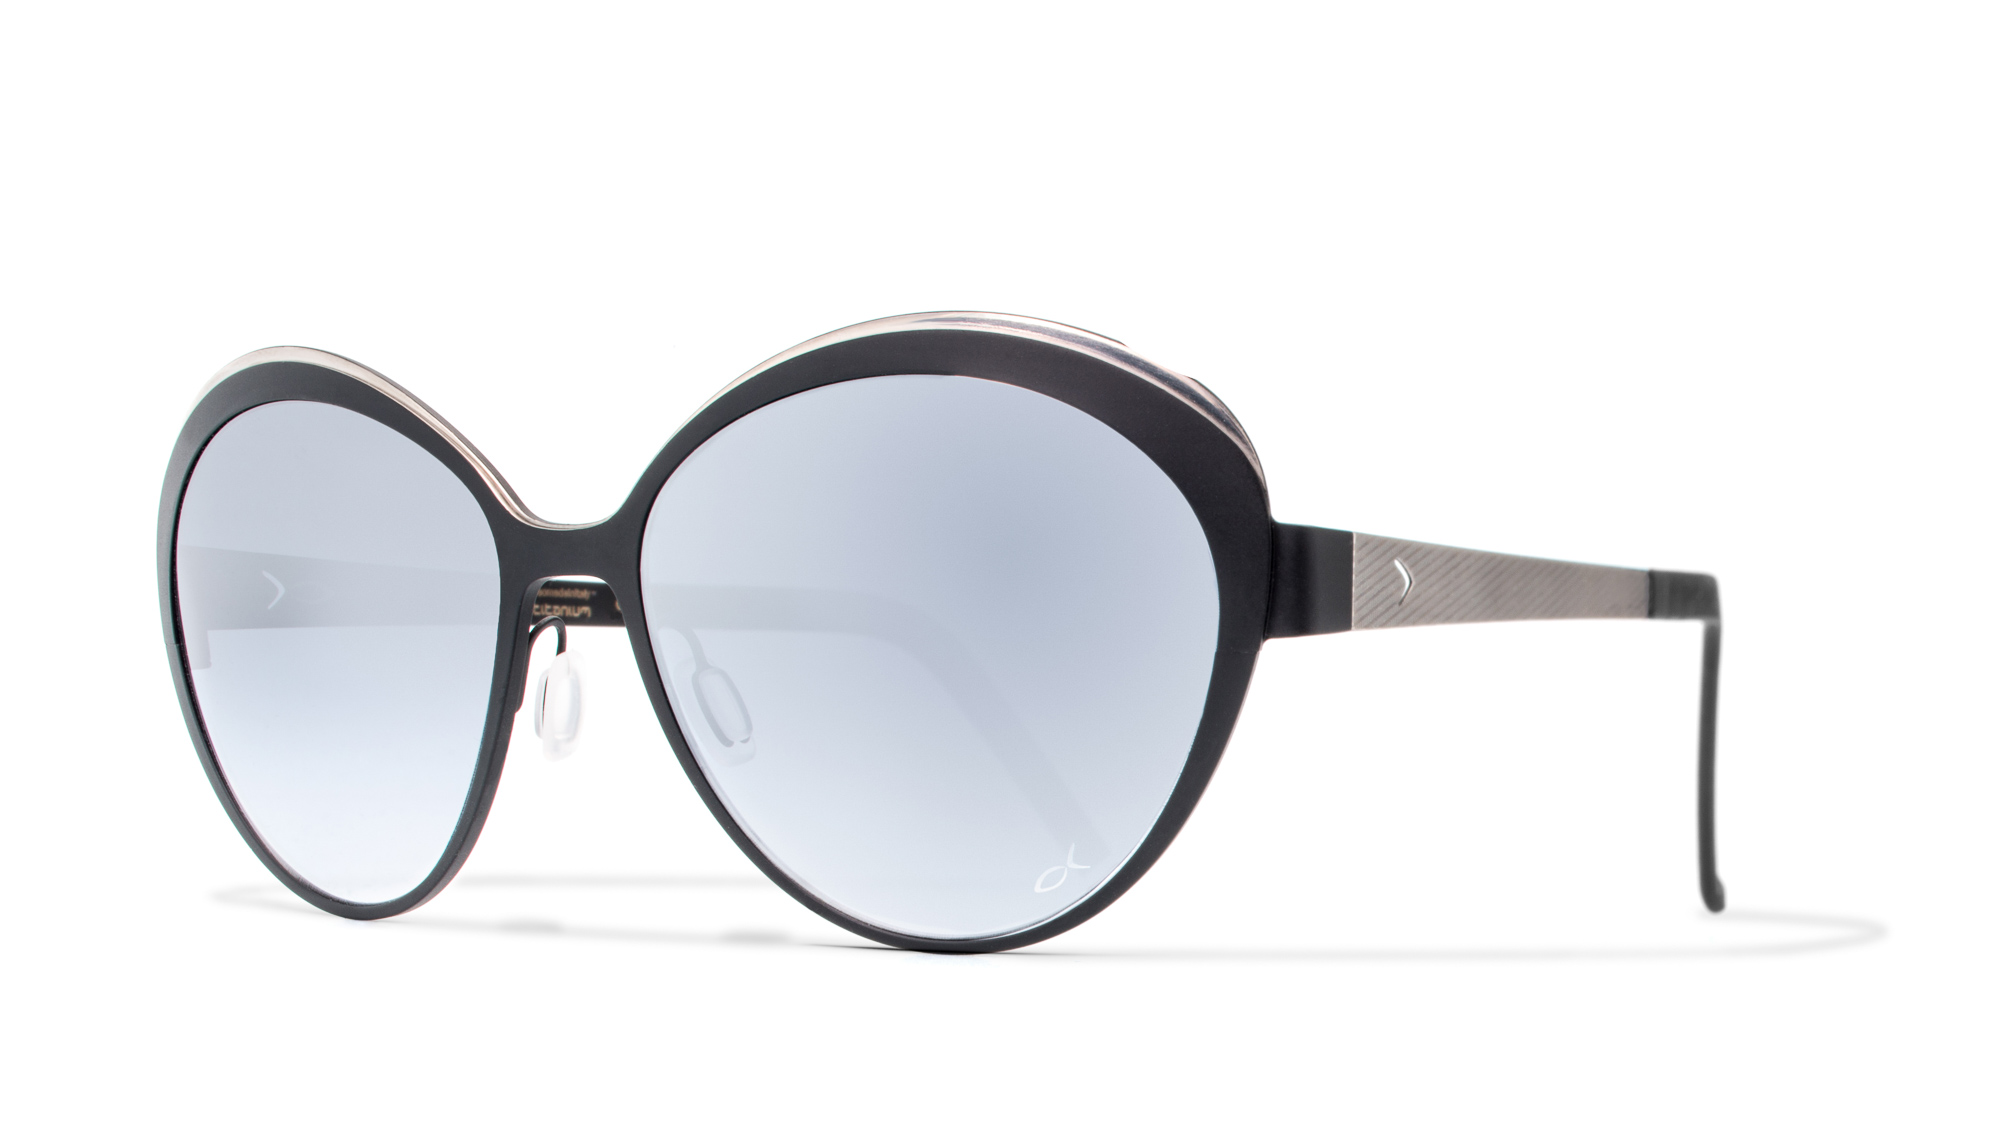 Blackfin | frame: Martinique BF778 Col.649